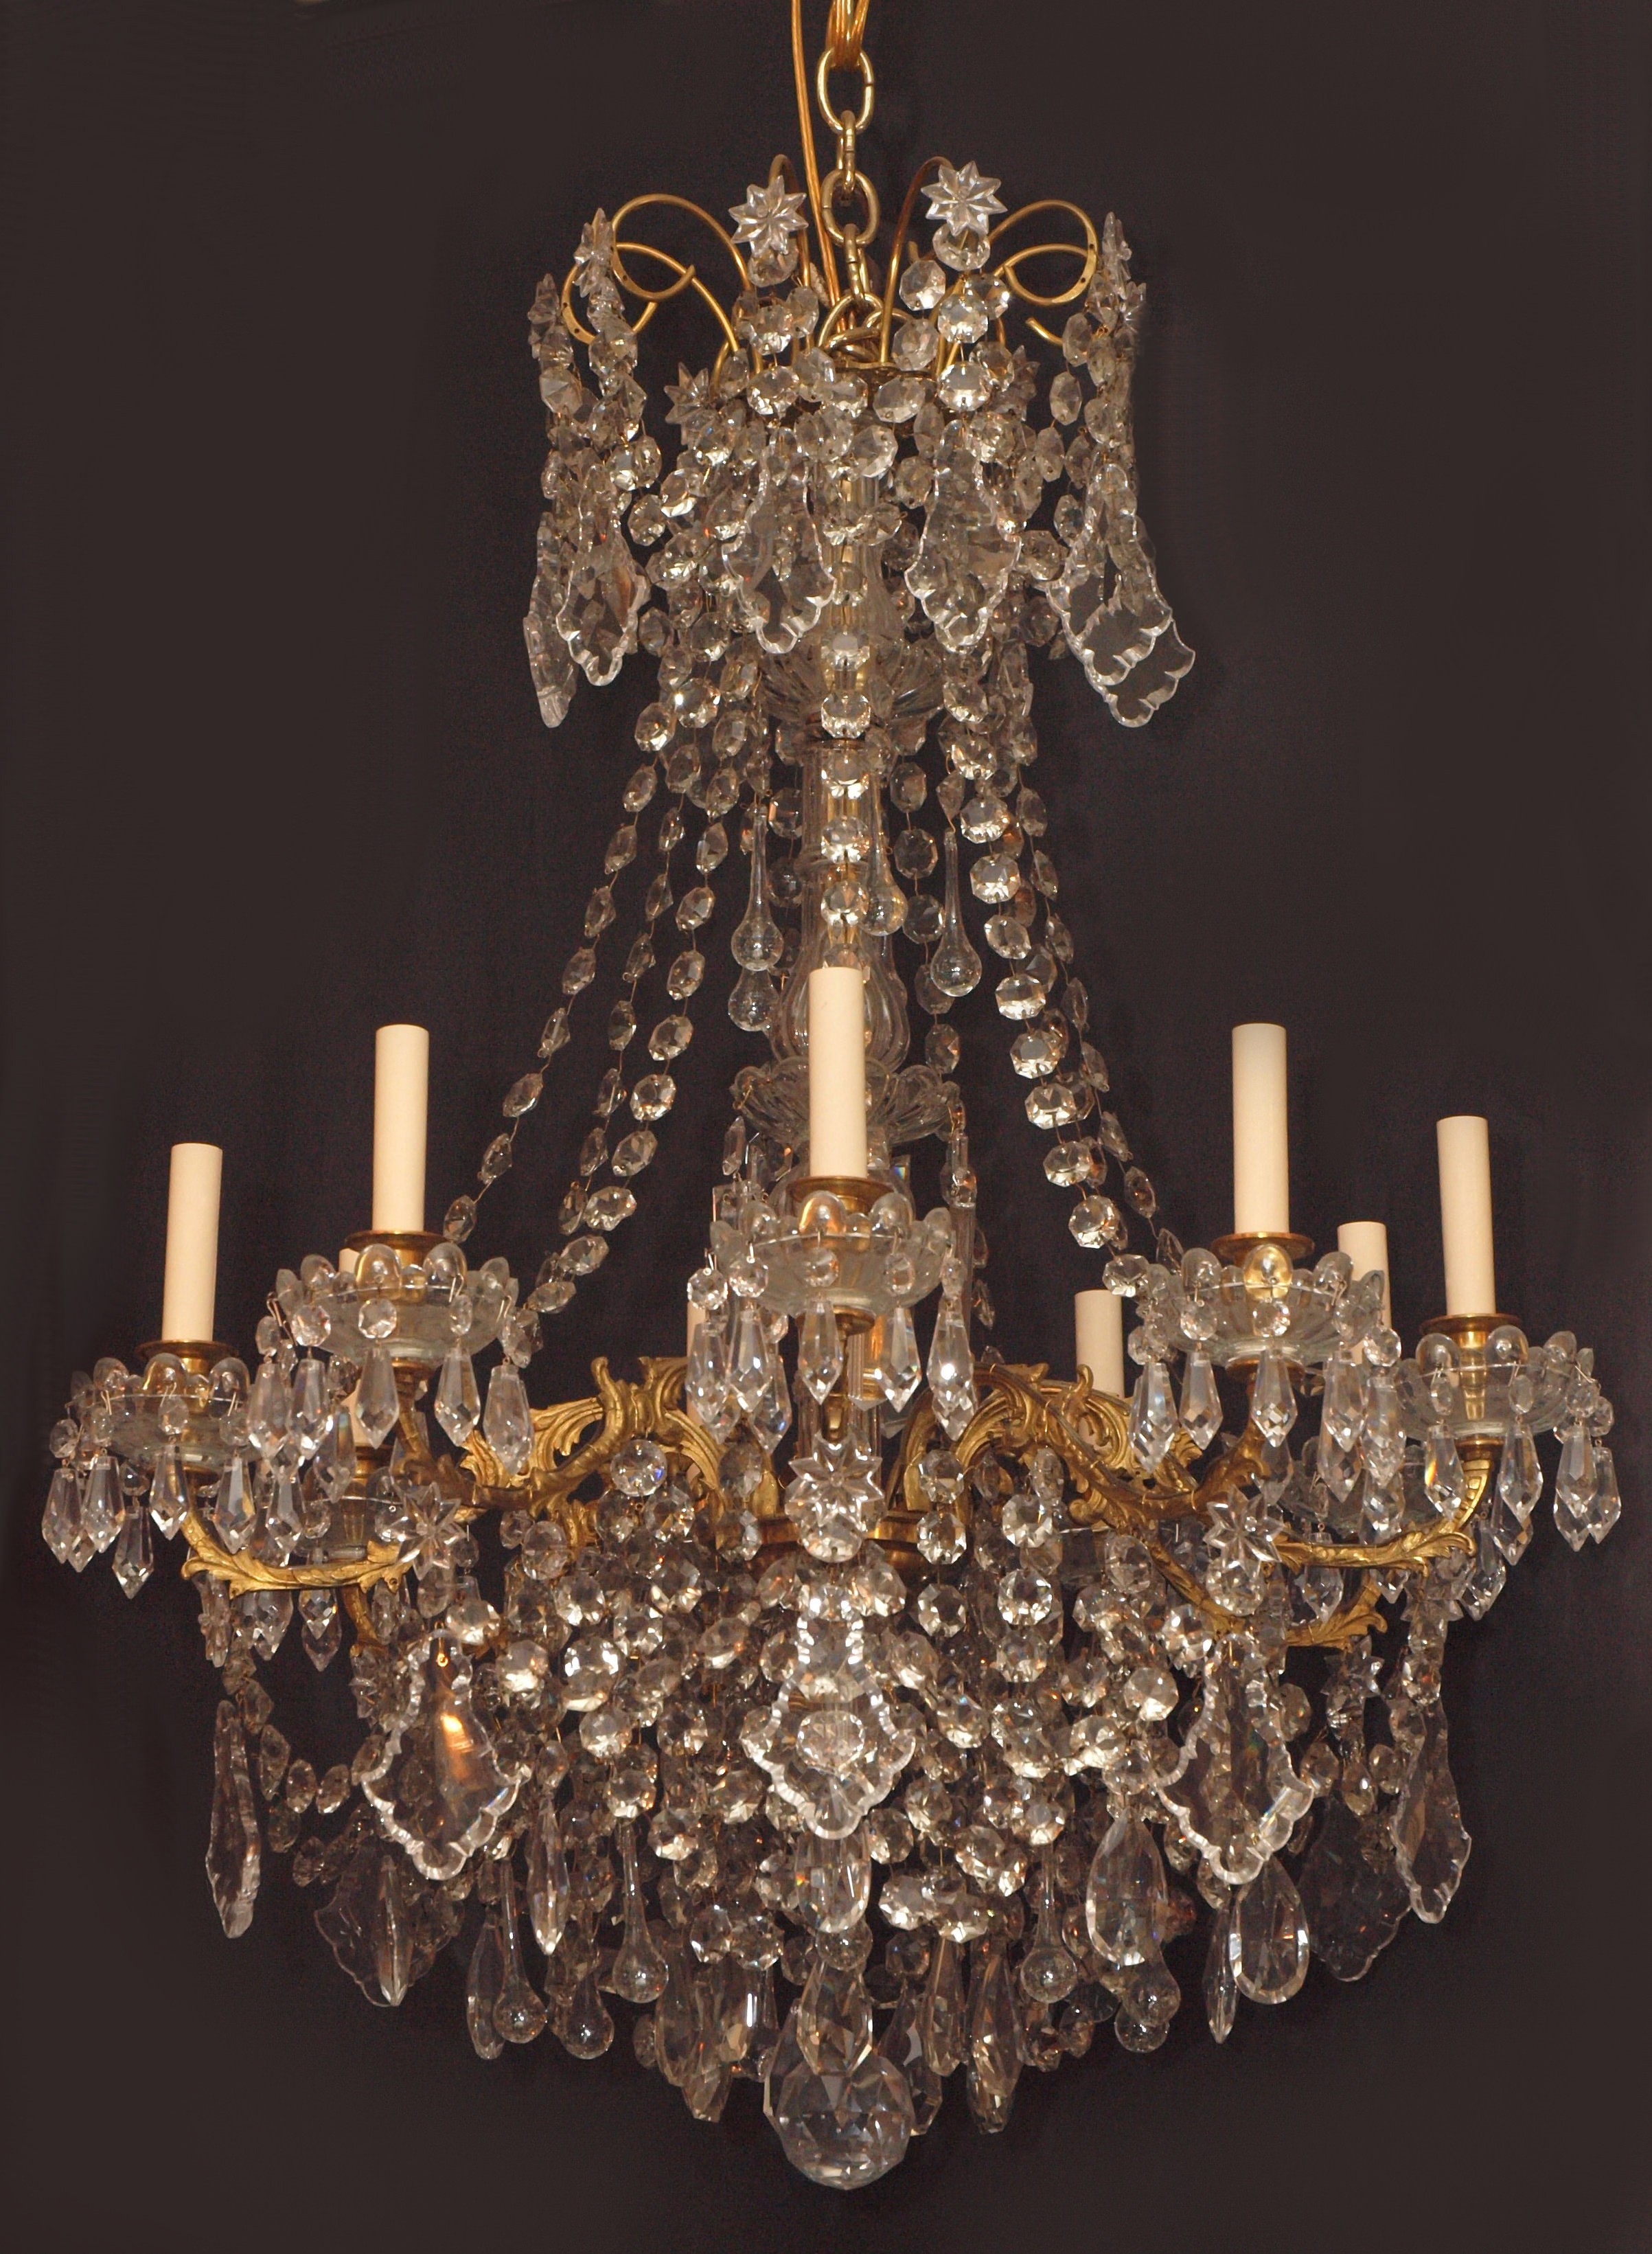 Crystal chandeliers chc7 for sale classifieds - Chandeliers on sale online ...